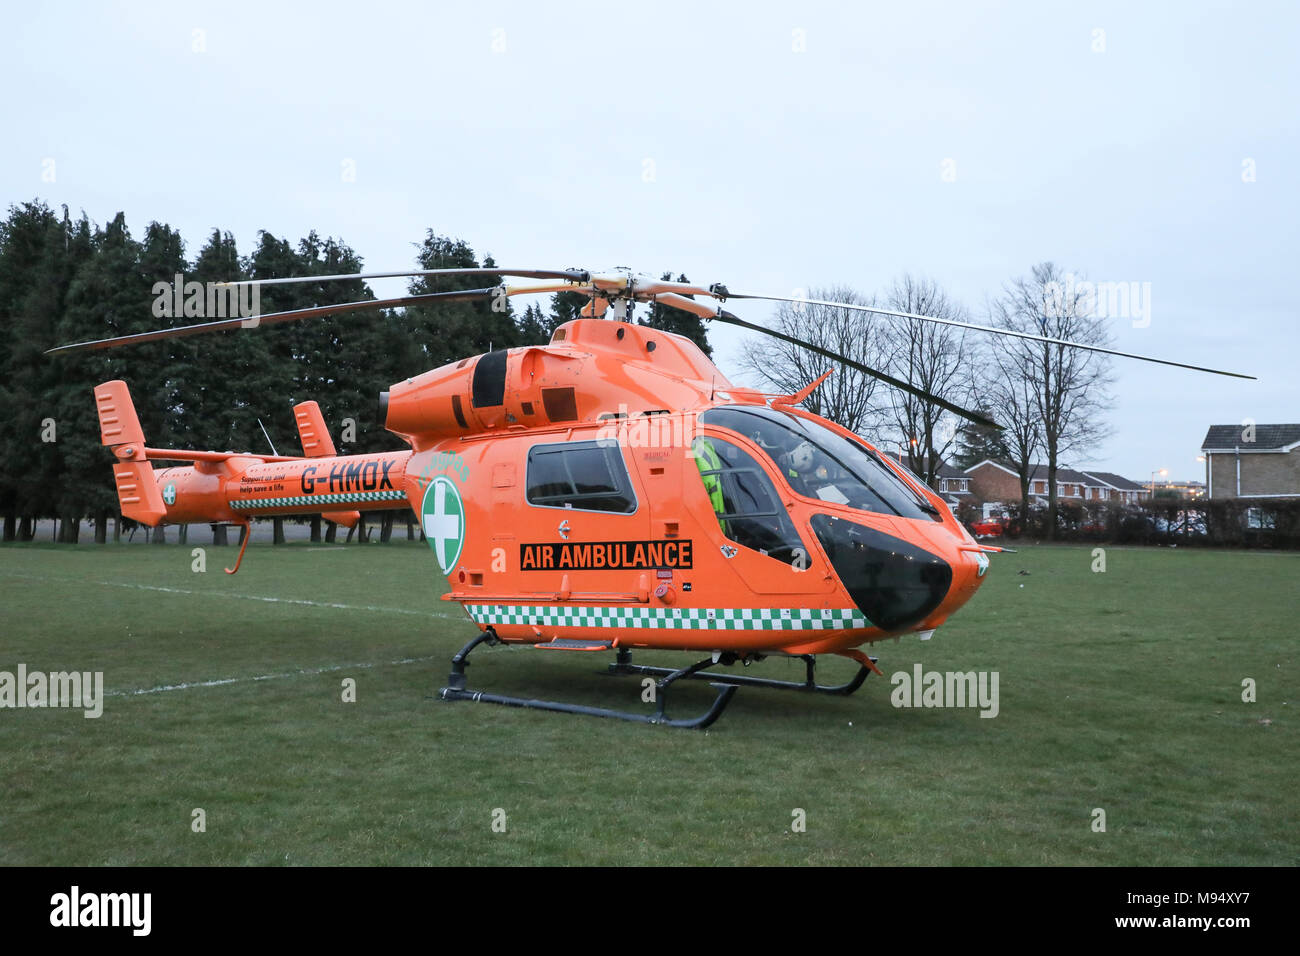 Luton, UK. 22nd Mar, 2018. Paramedics respond to an emergency call in Luton, Bedfordshire and land their MD-900 Air Ambulance helicopter at Crawley Green Park. Credit: Nick Whittle/Alamy Live News - Stock Image